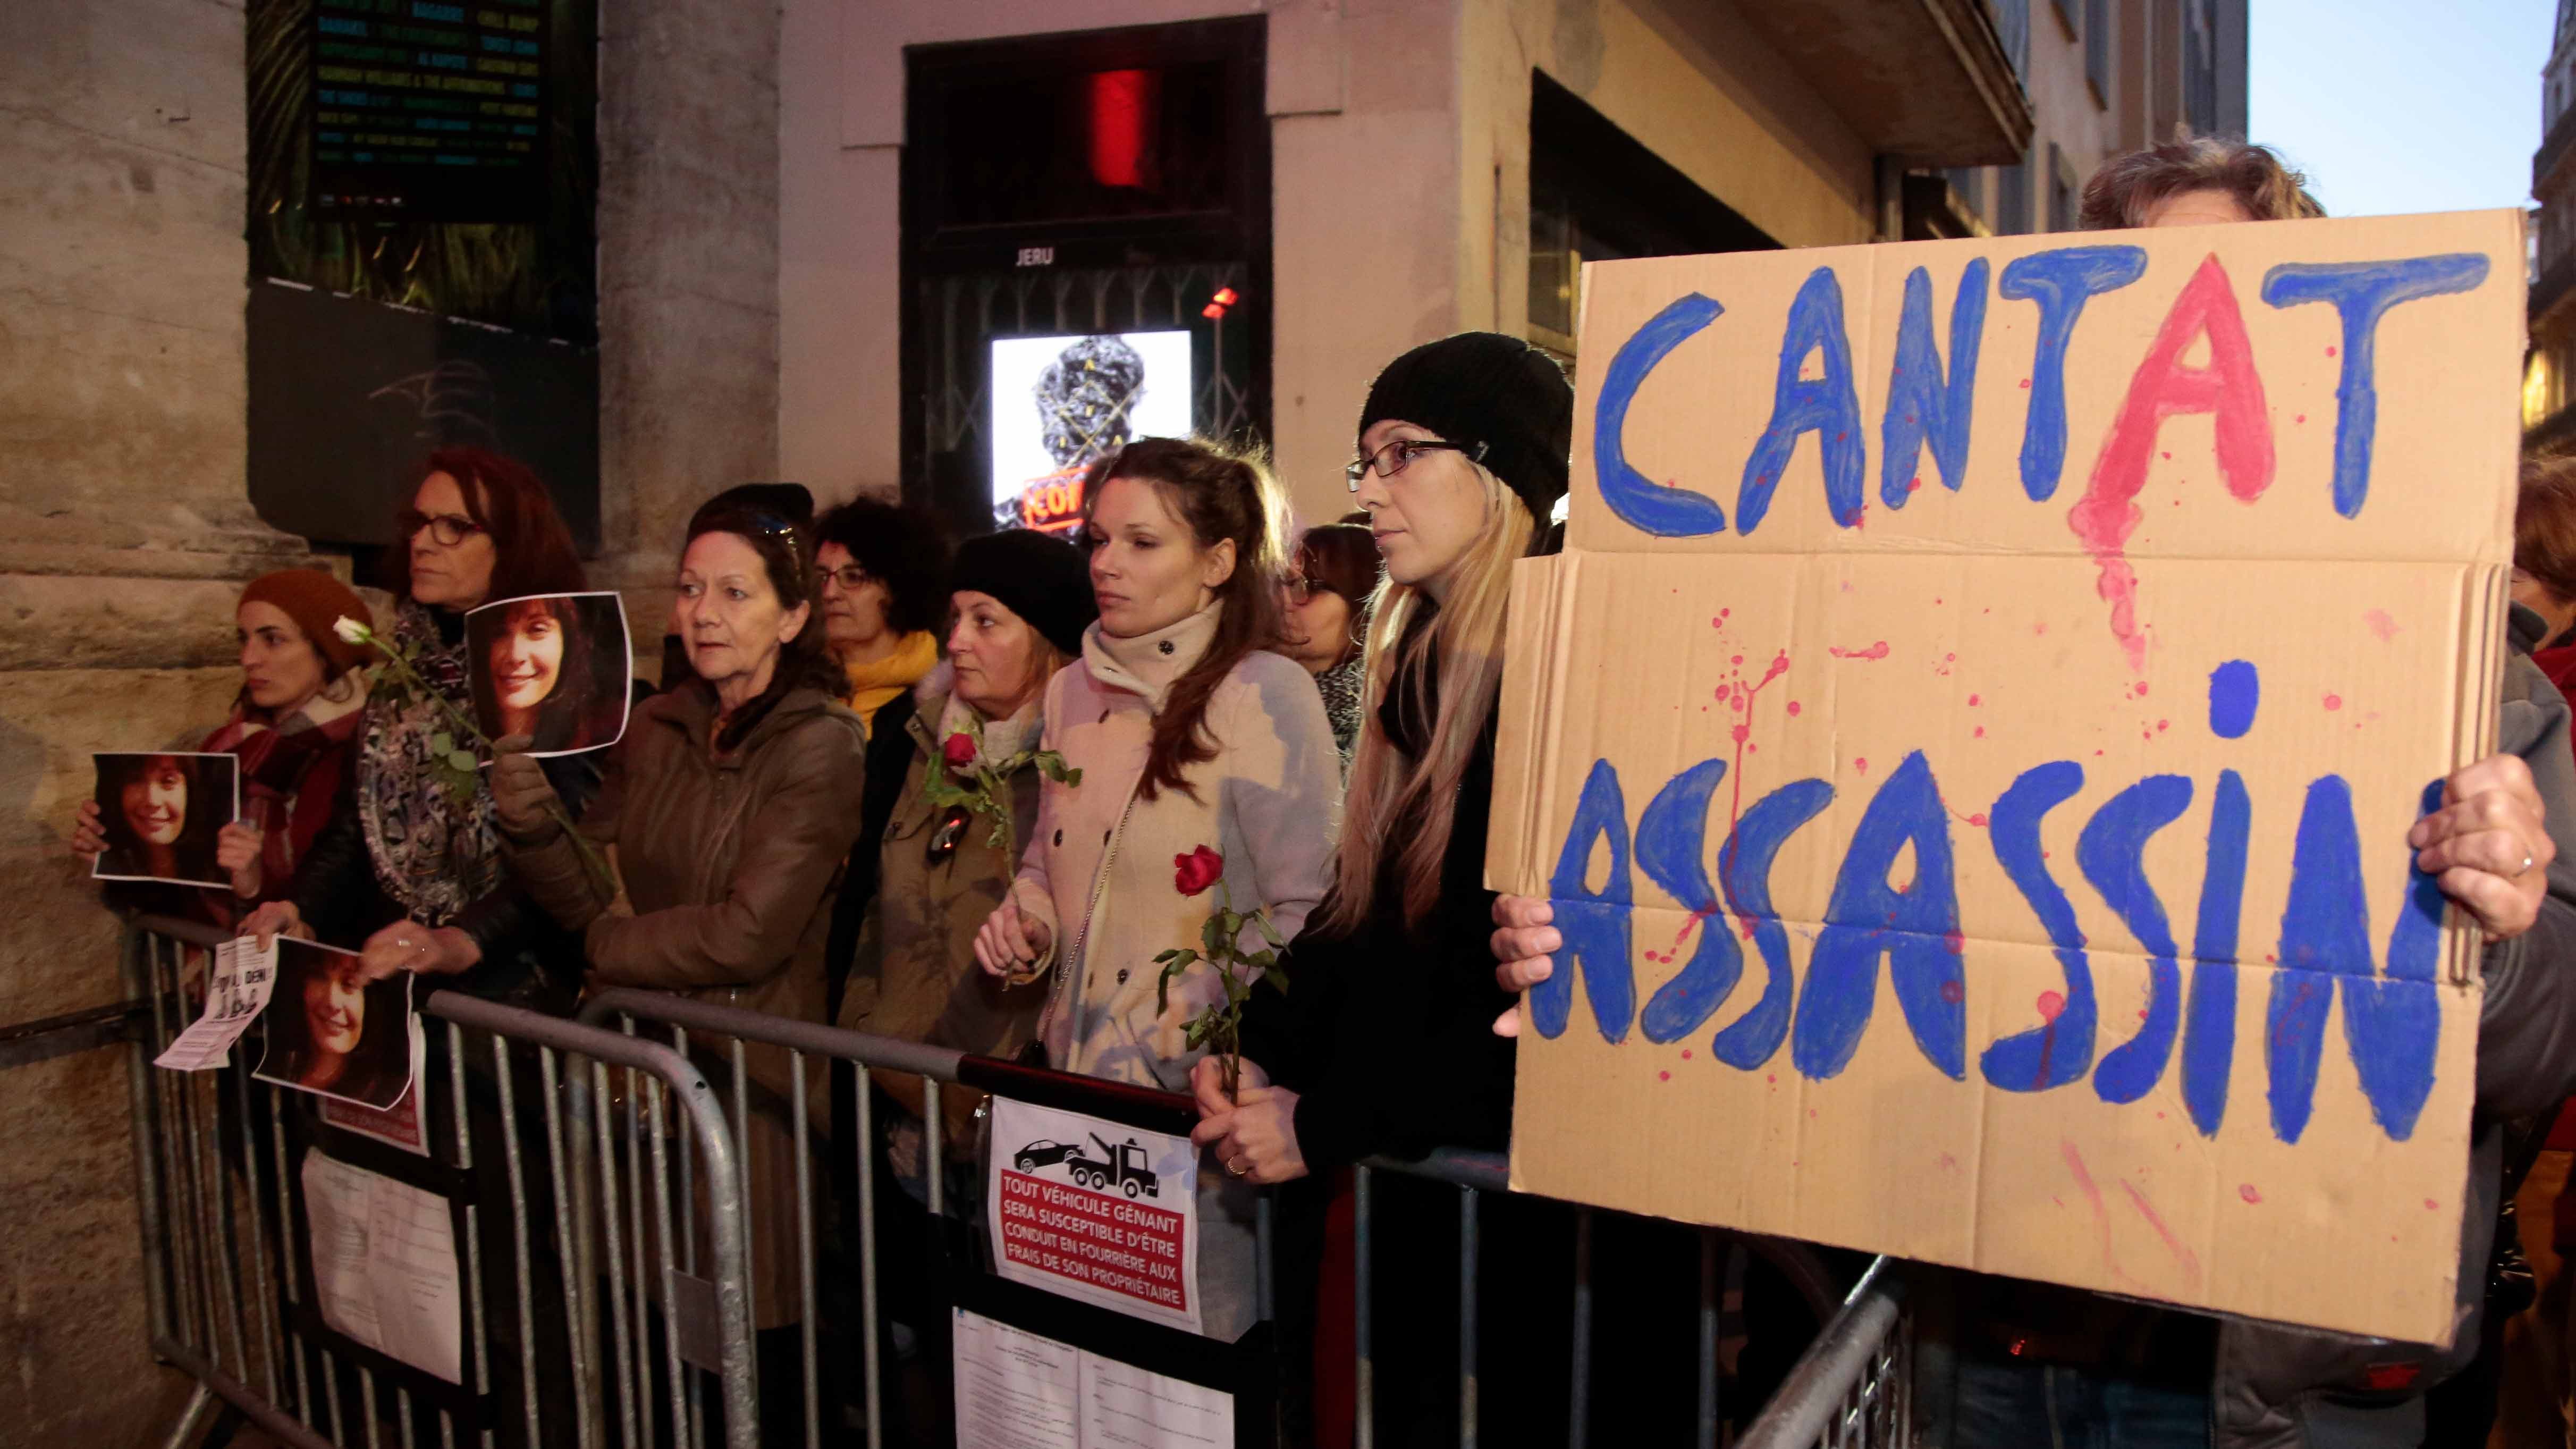 """A crowd stands behind a metal gate. One holds a sign that says """"Cantat assassin"""""""